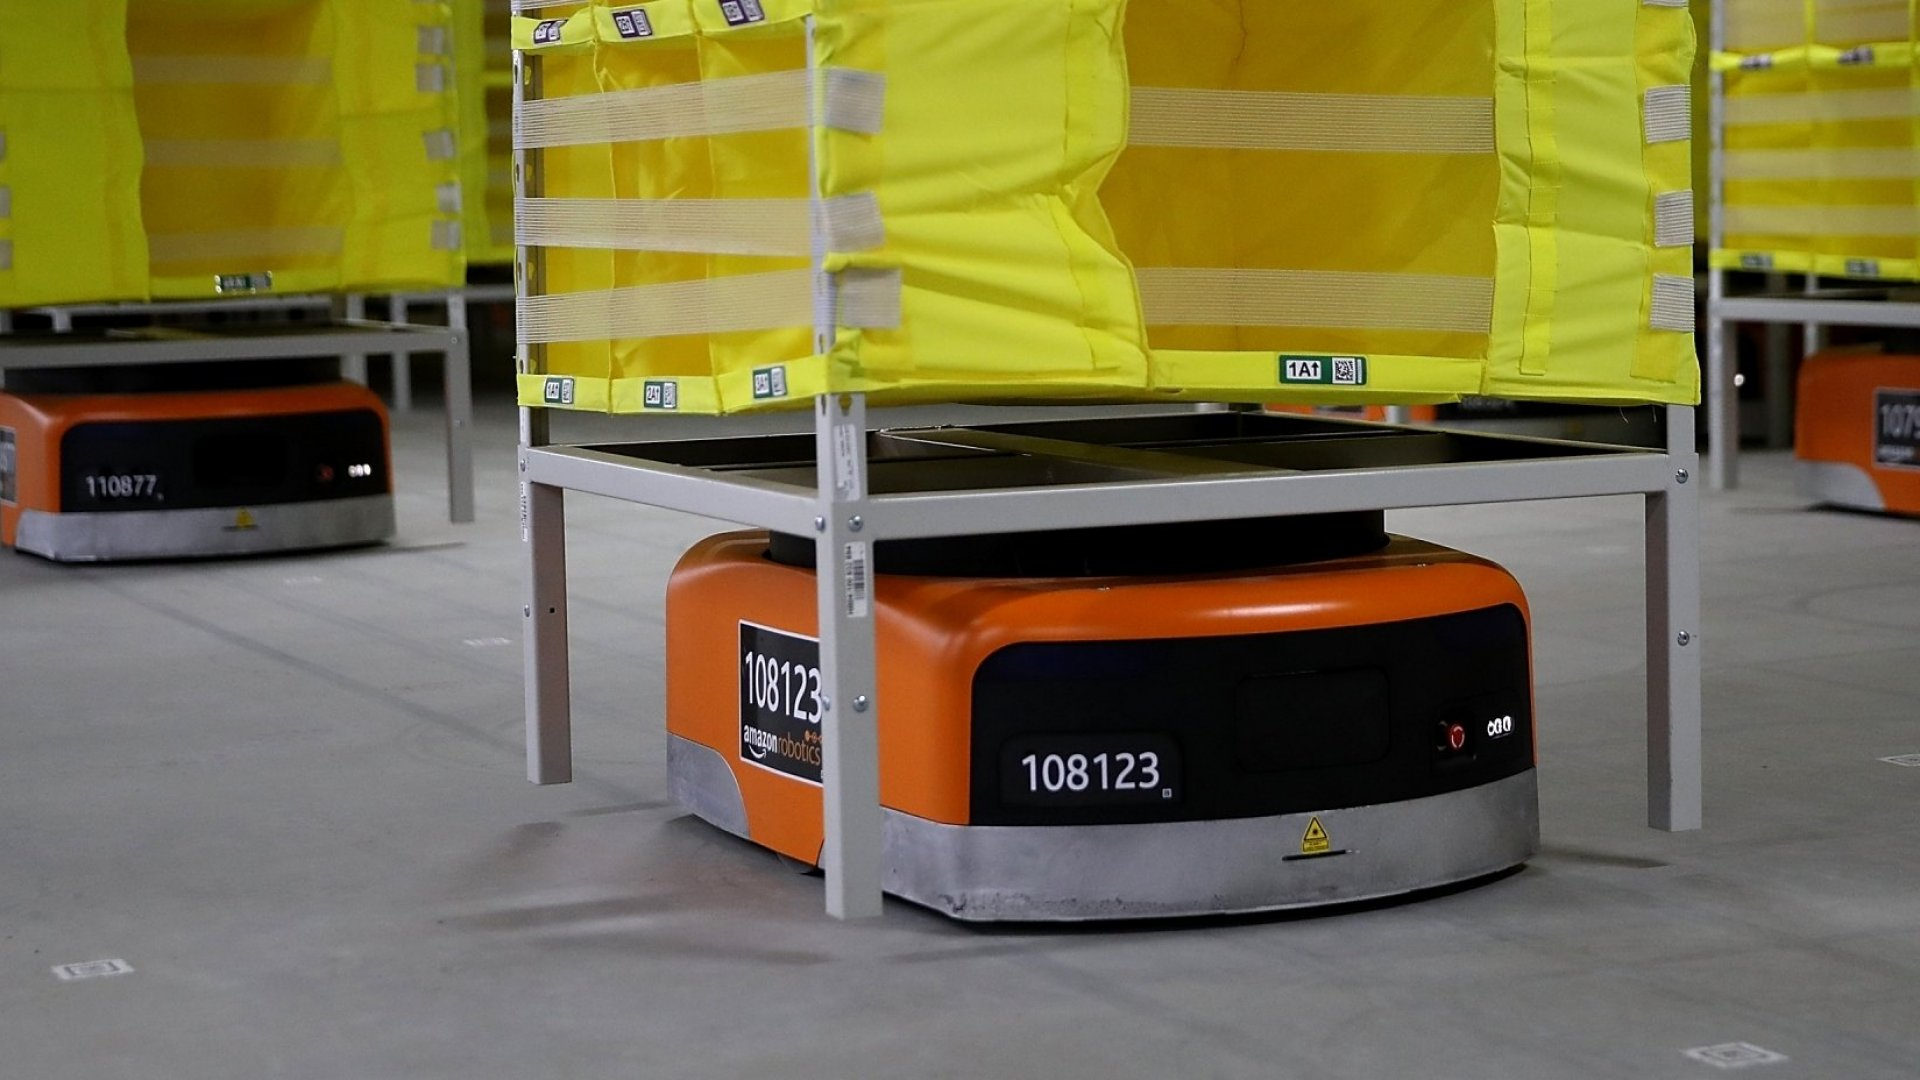 Robotic technology and vision systems are tested at a new Amazon fulfillment center on August 10, 2017 in Sacramento, California.